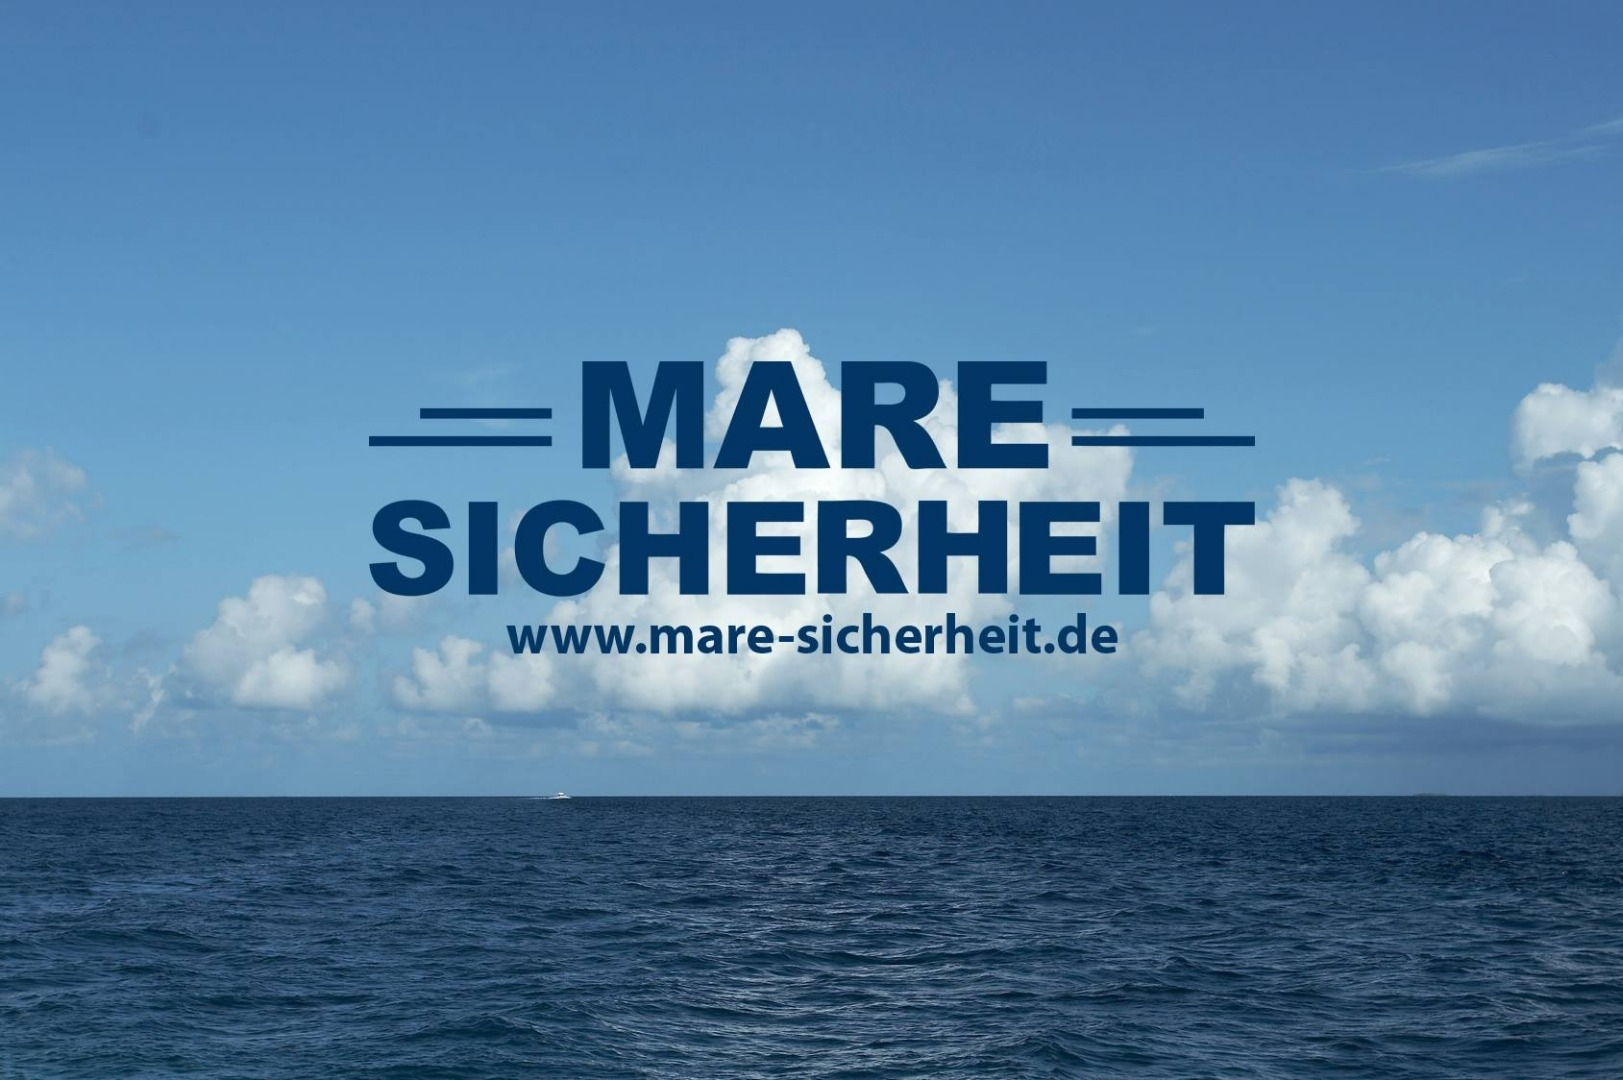 https://www.mare-sicherheit.de/